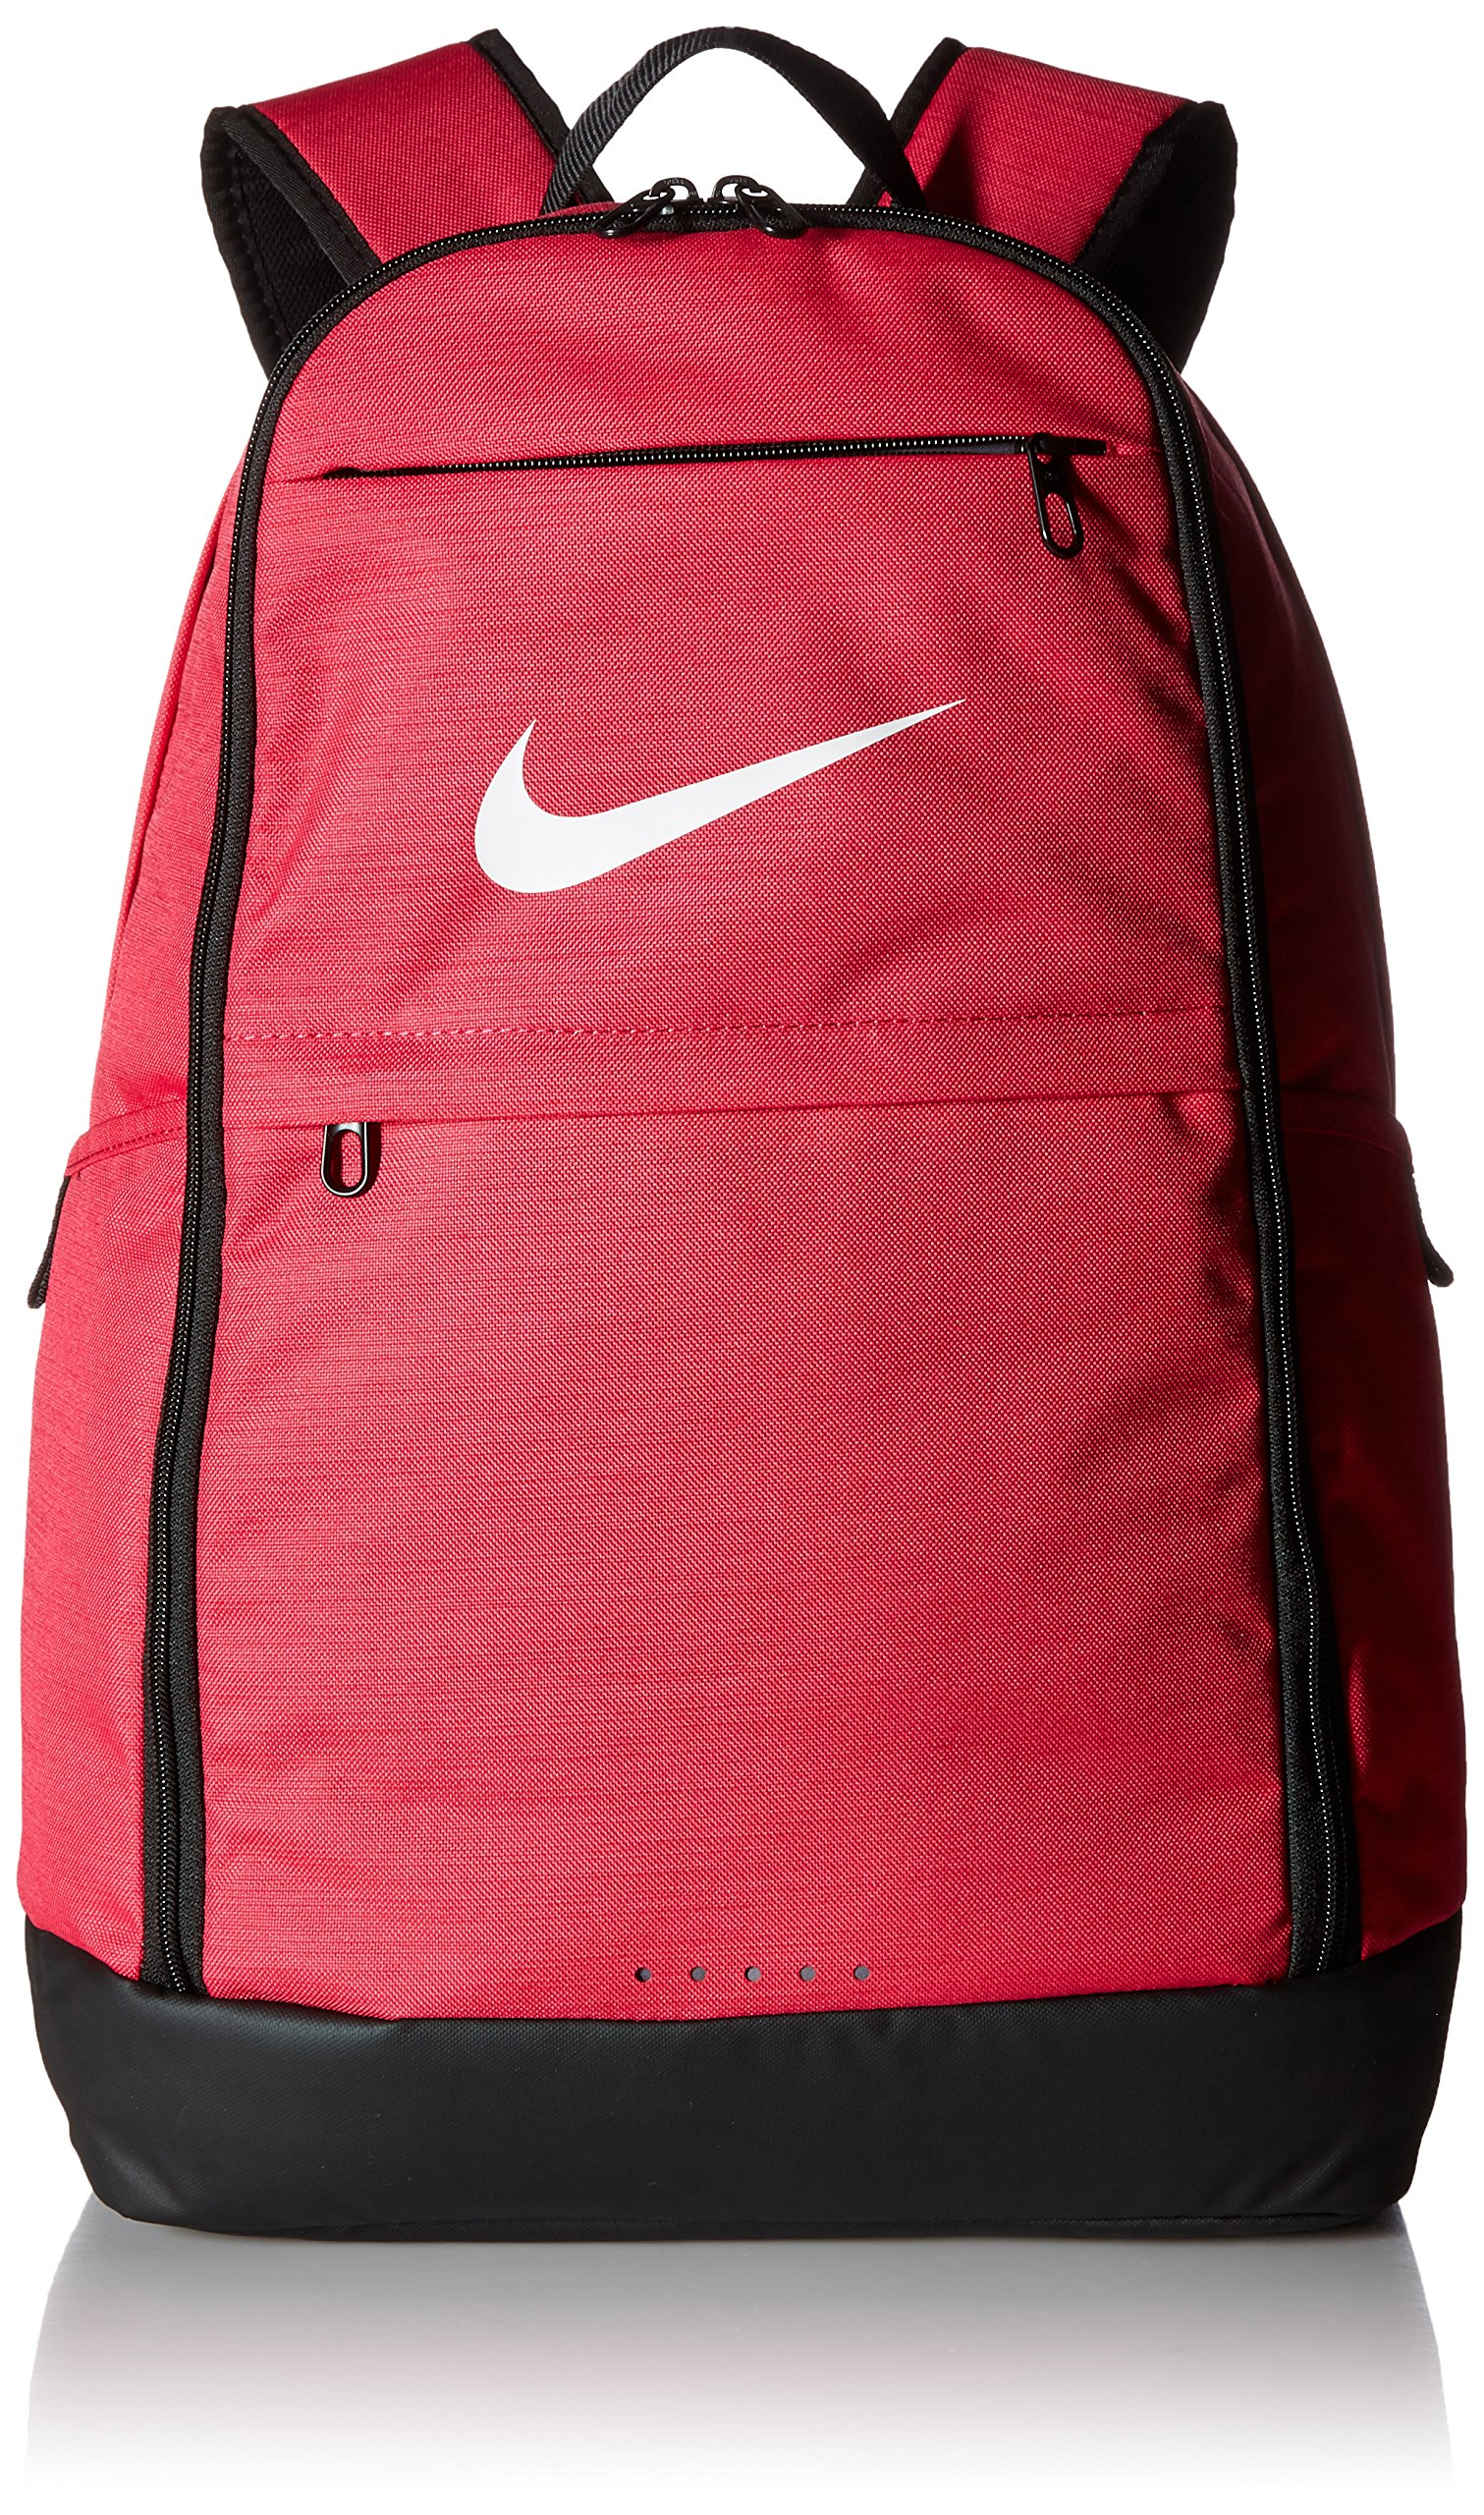 Nike Brasilia Training Backpack, Extra Large Backpack Built for Secure Storage with a Durable Design, Rush Pink/Black/White by Nike